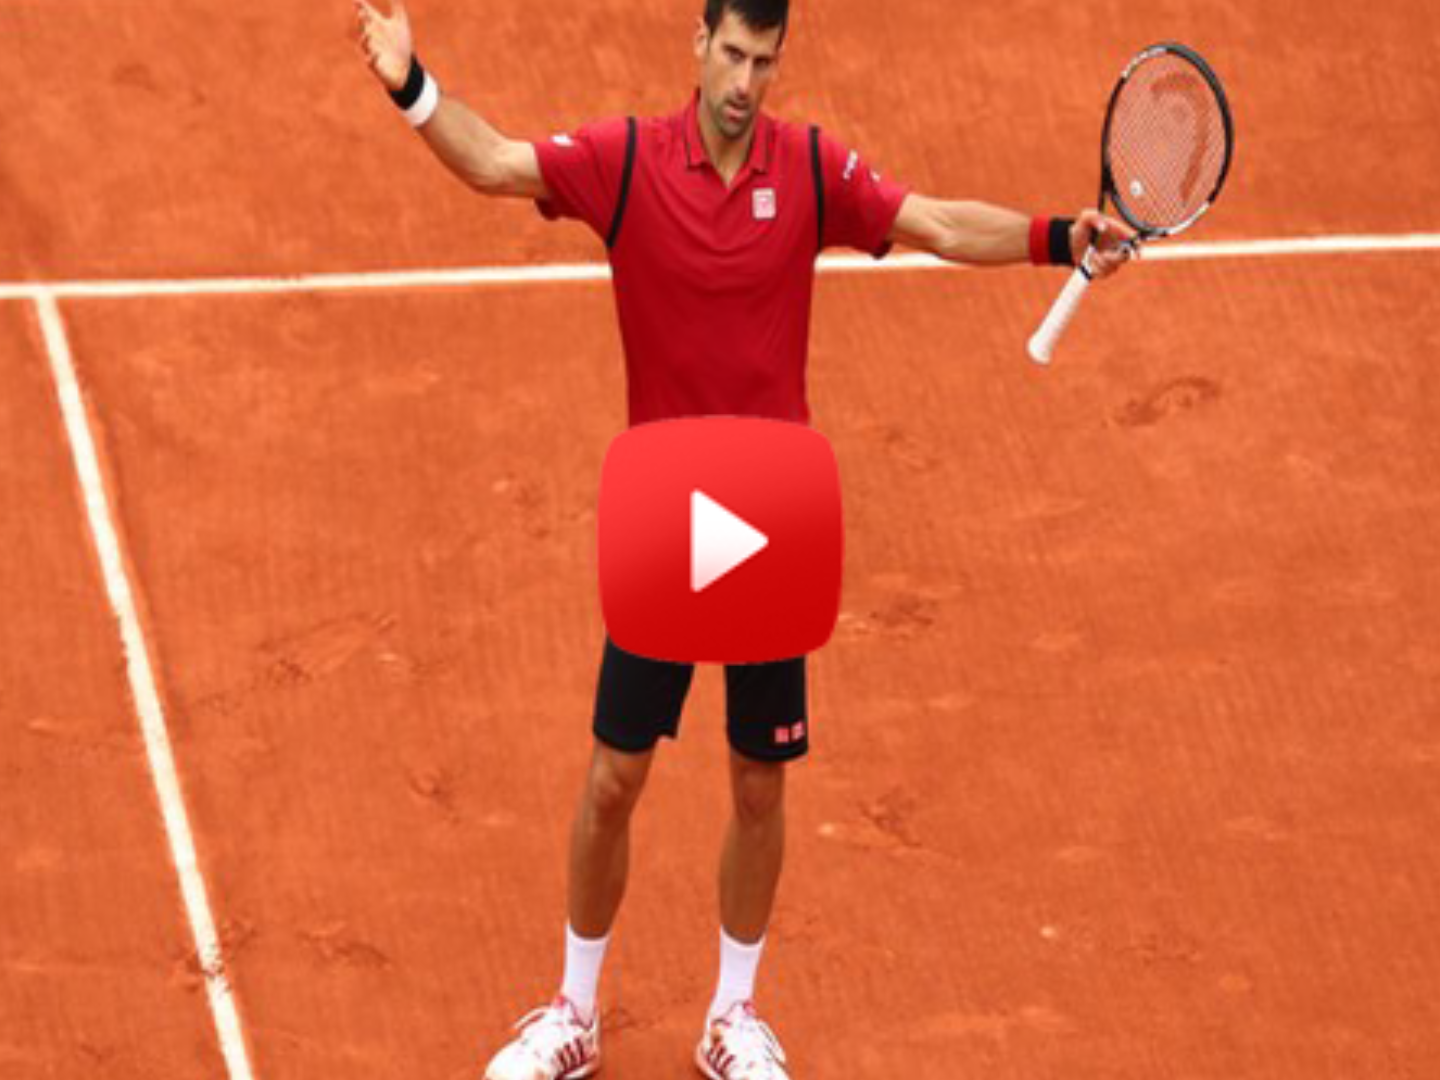 Top 5 Reasons Novak Djokovic Won't Break Roger Federer's Grand Slam Record Part 1 of 2